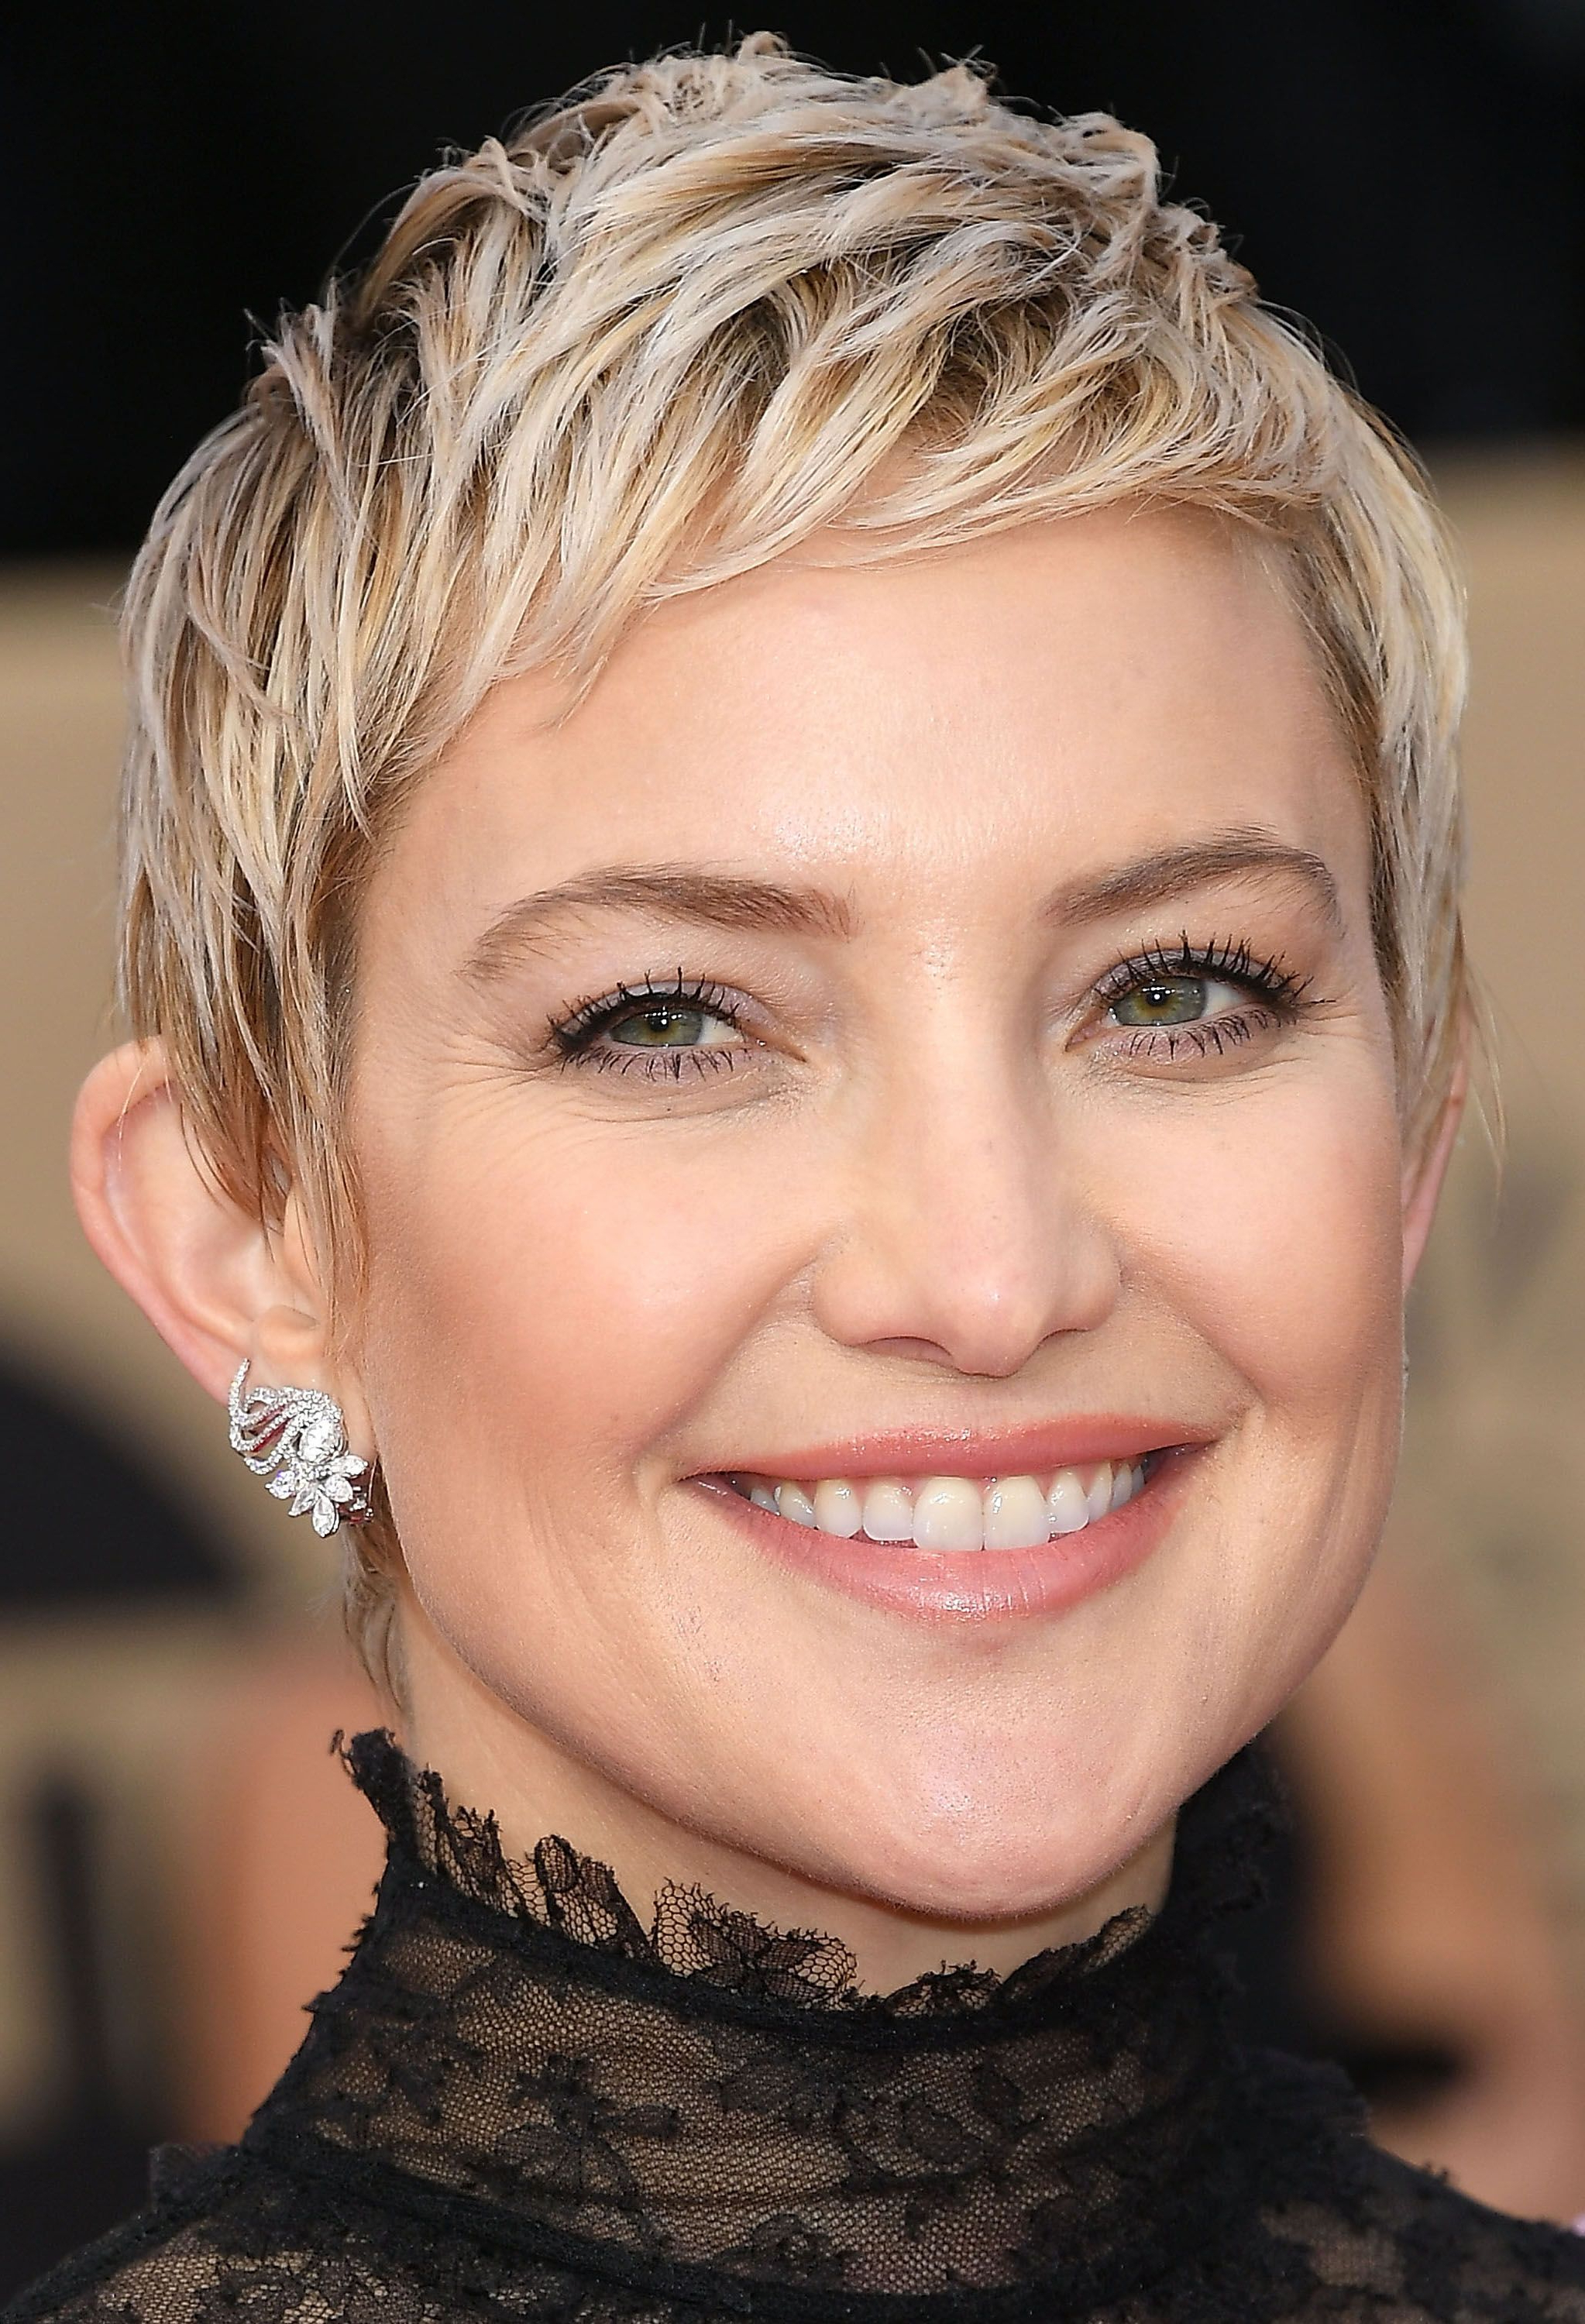 35 Cute Short Haircuts For Women 2018 – Easy Short Female Hairstyle Throughout Super Short Haircuts For Girls (View 9 of 25)